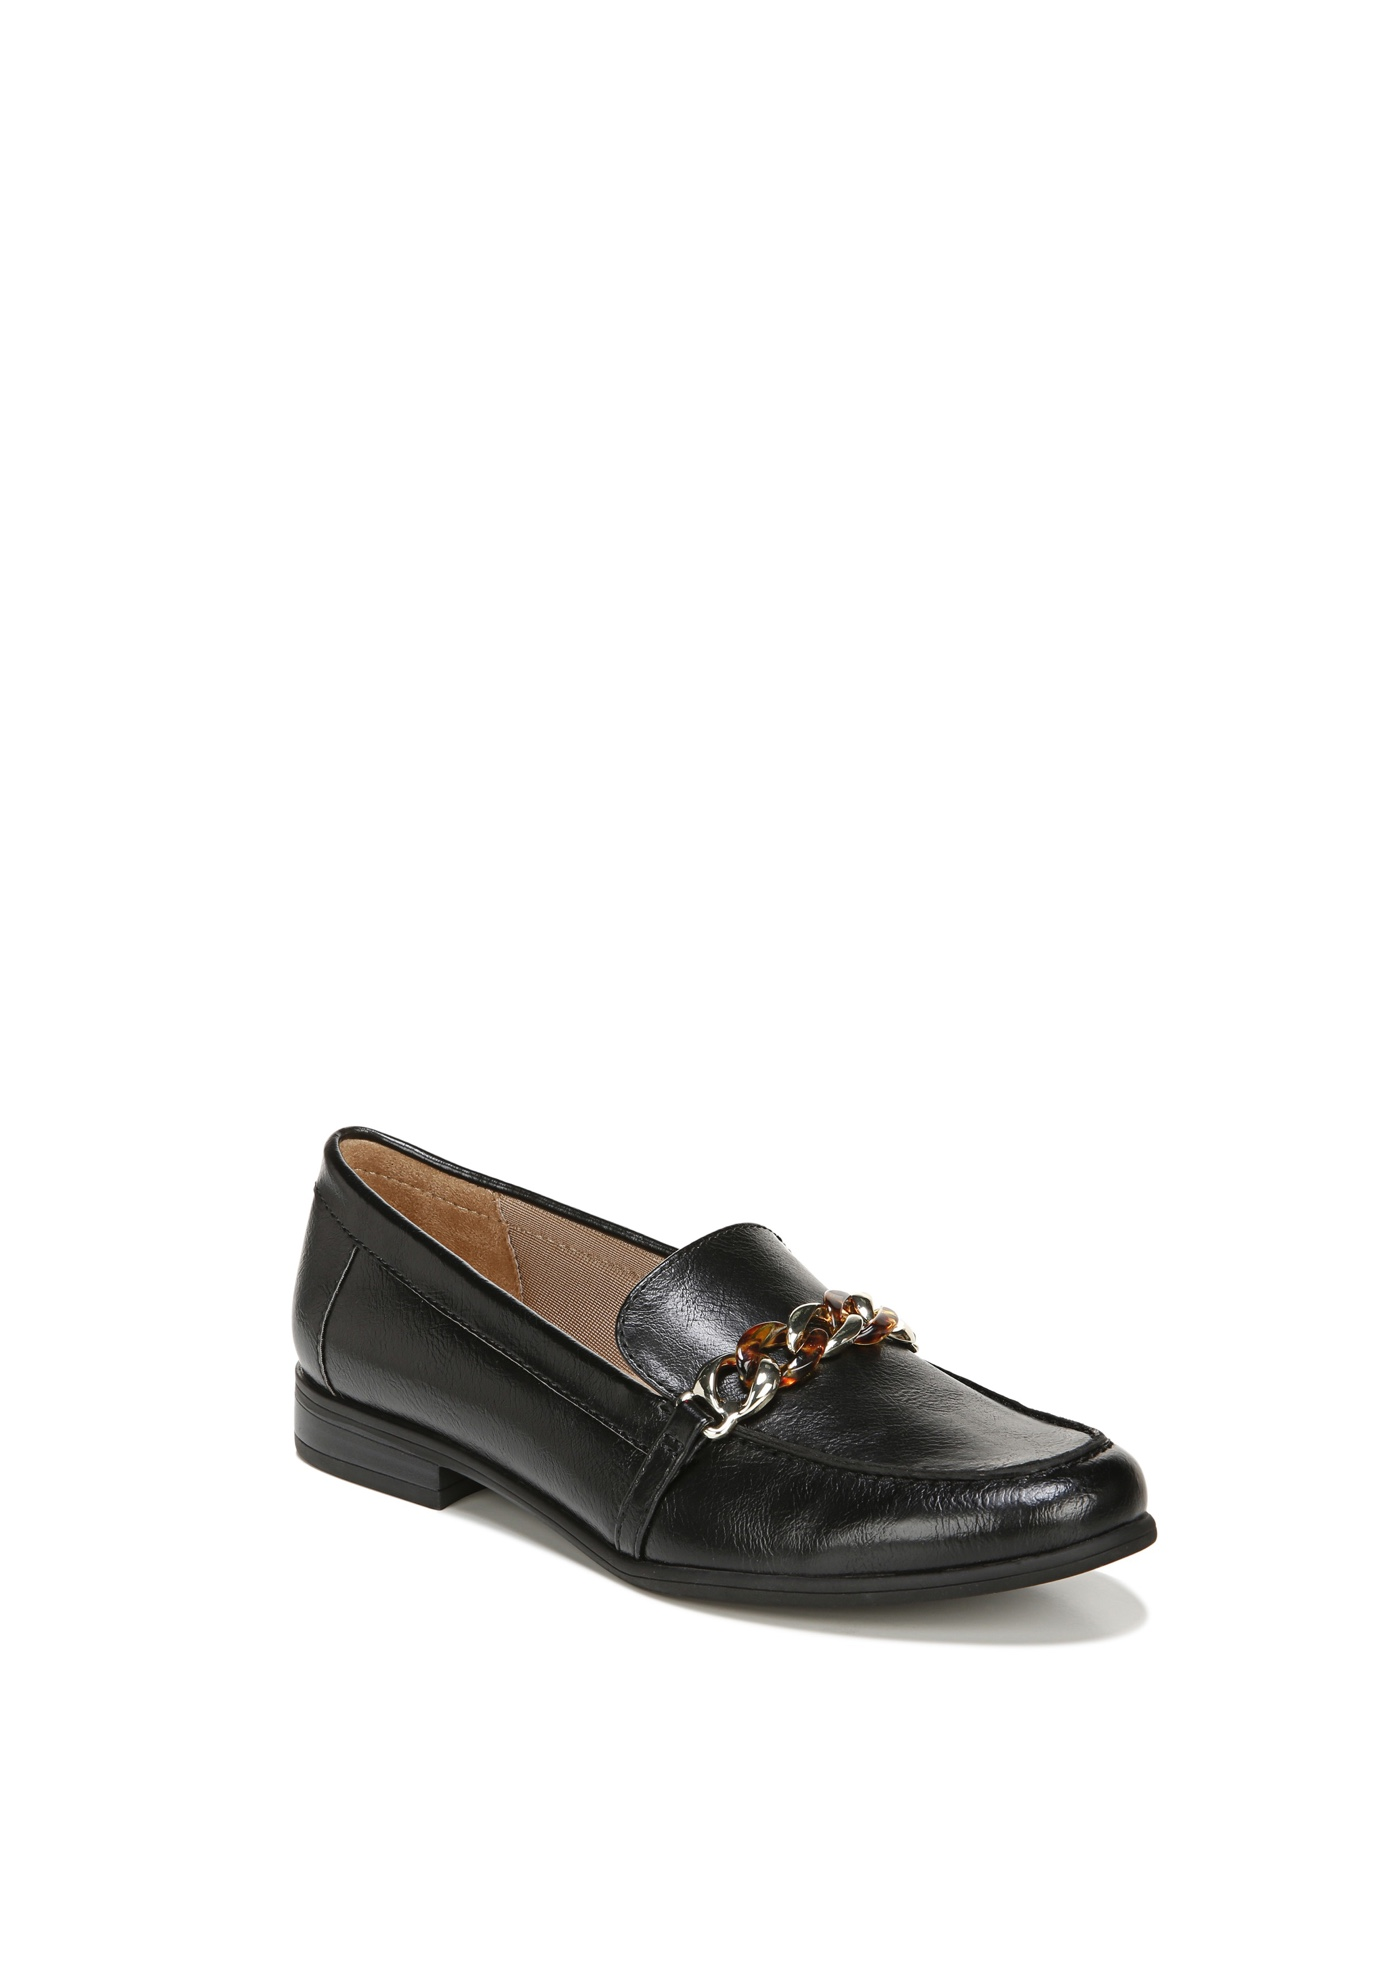 Myra Loafer by Lifestride,